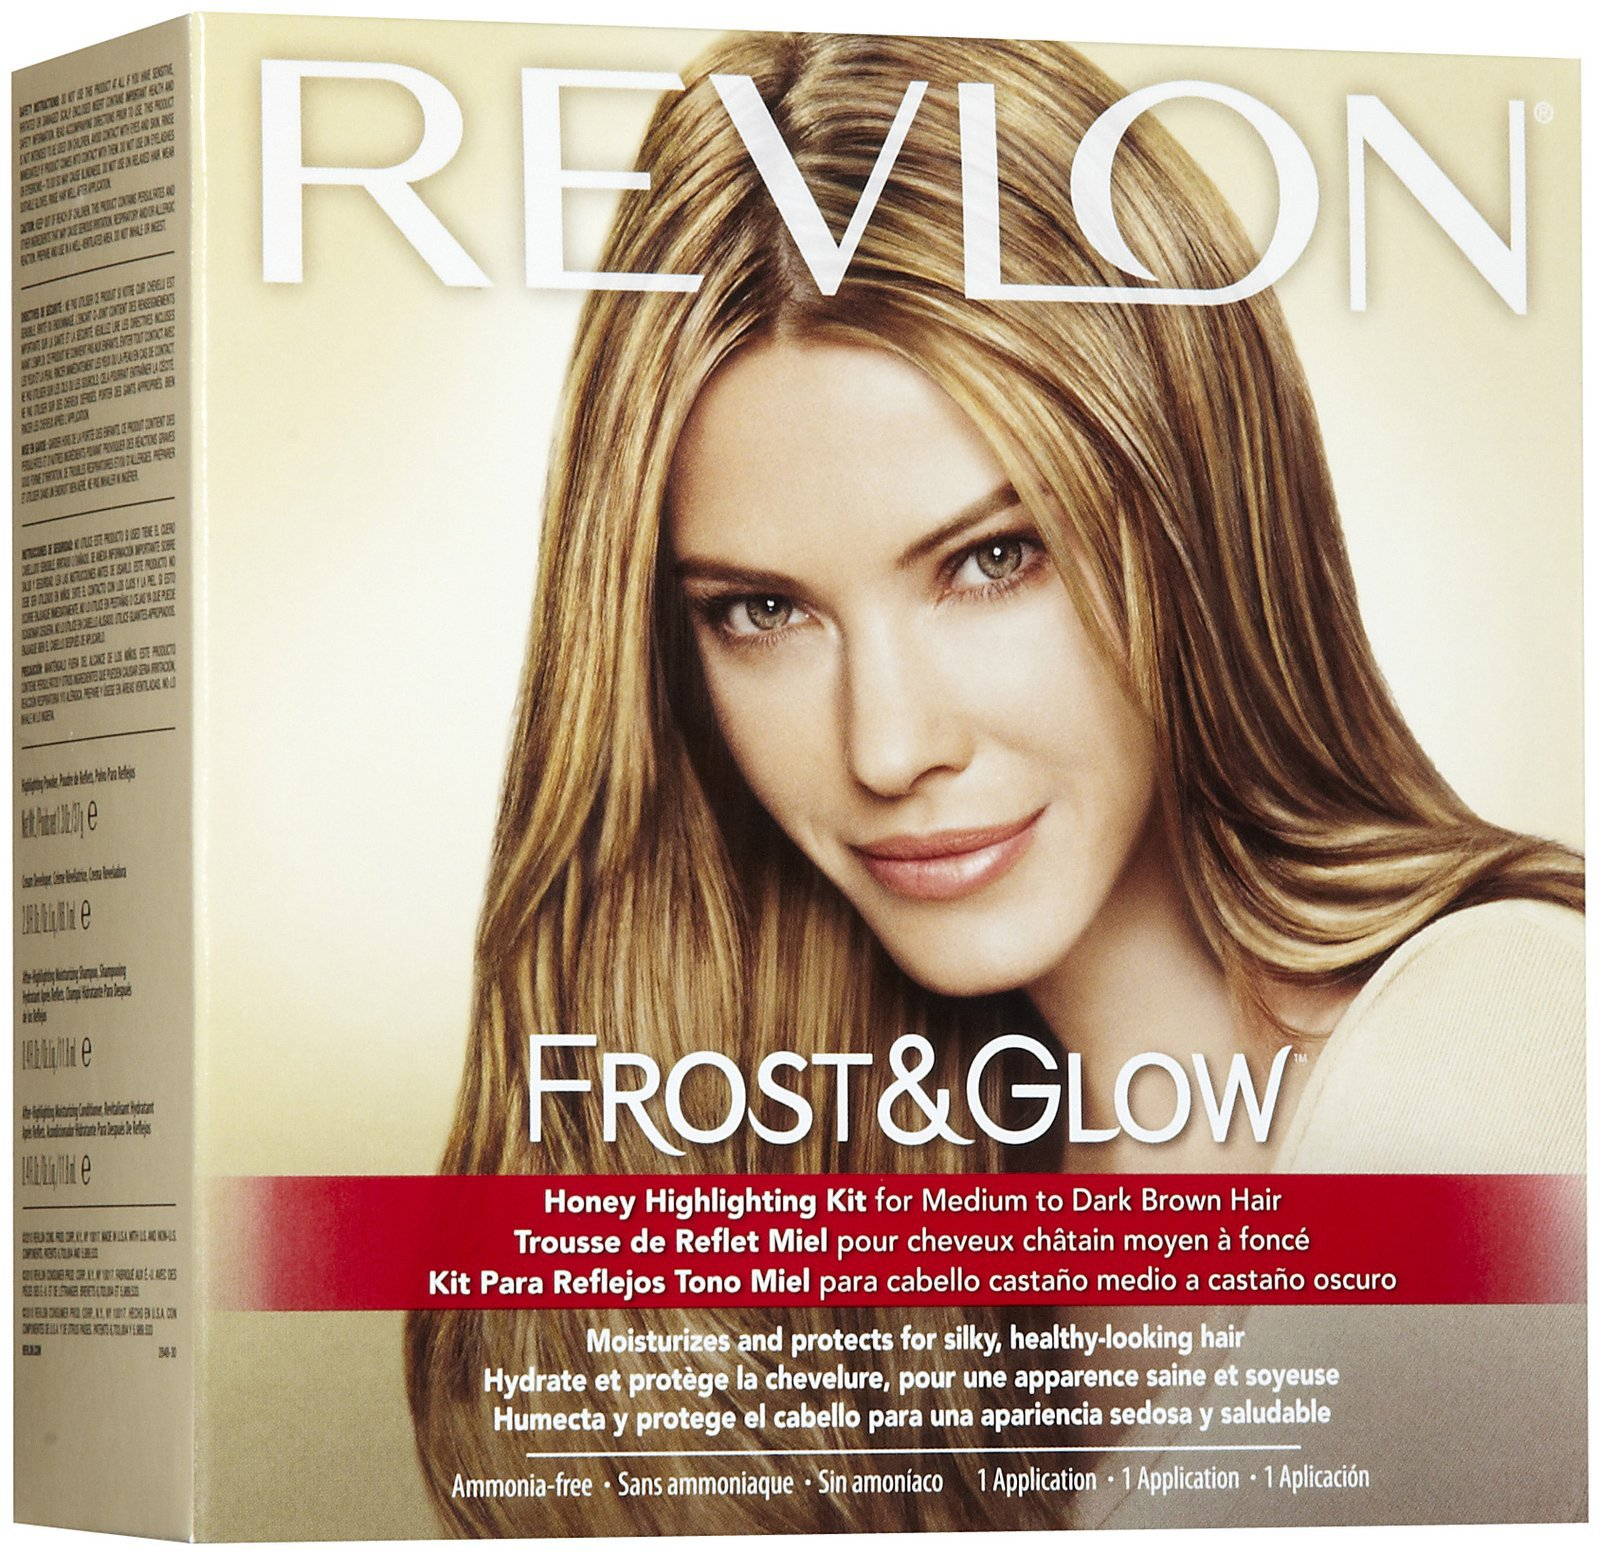 Revlon Frost And Glow Highlighting Kit Reviews In Hair